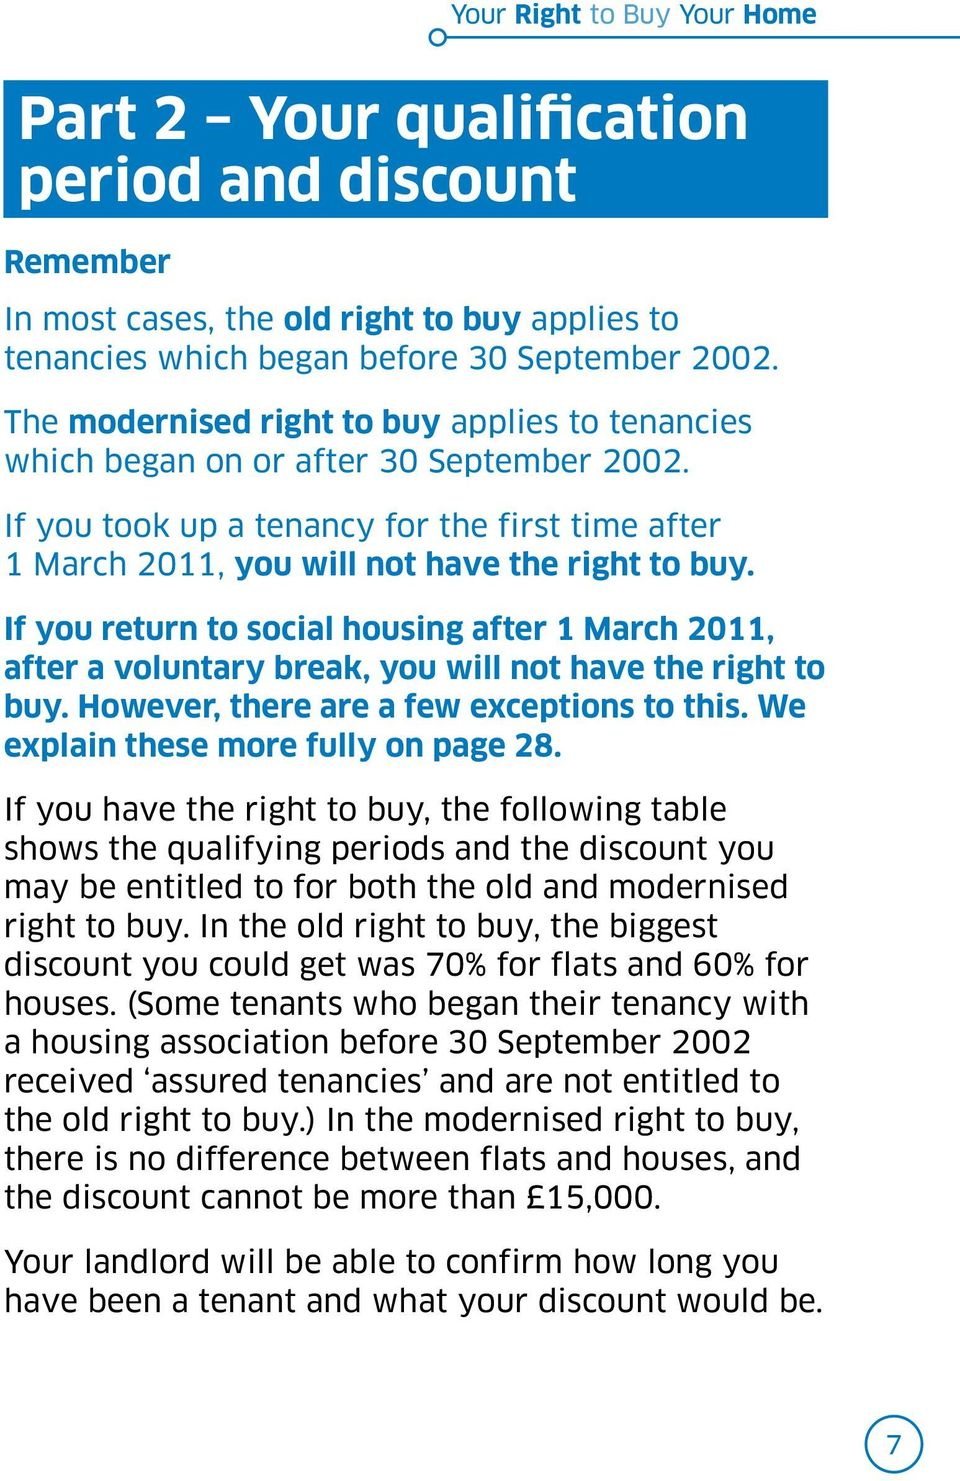 If you return to social housing after 1 March 2011, after a voluntary break, you will not have the right to buy. However, there are a few exceptions to this. We explain these more fully on page 28.